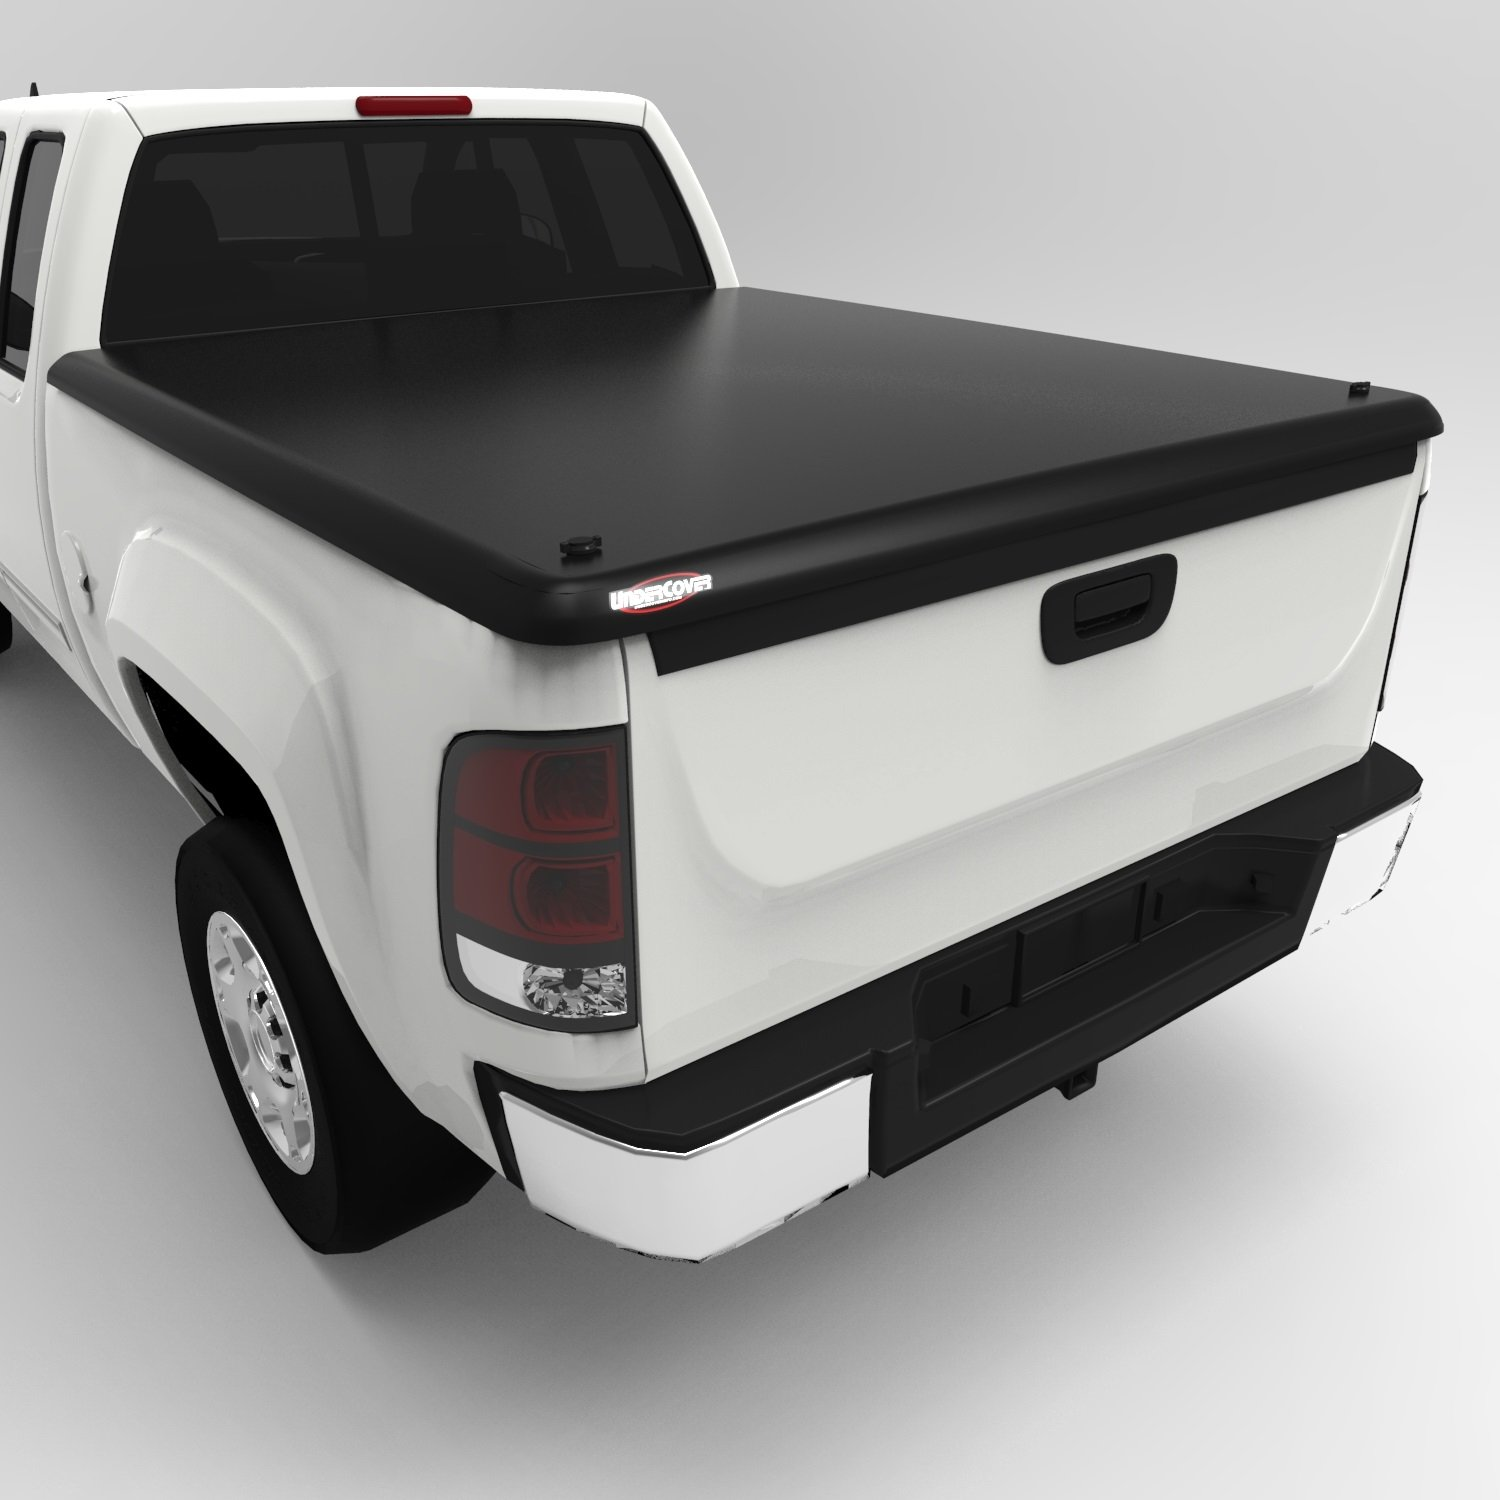 h unlimited trux covers images bed cover ex gallery product ridgelander truck undercover